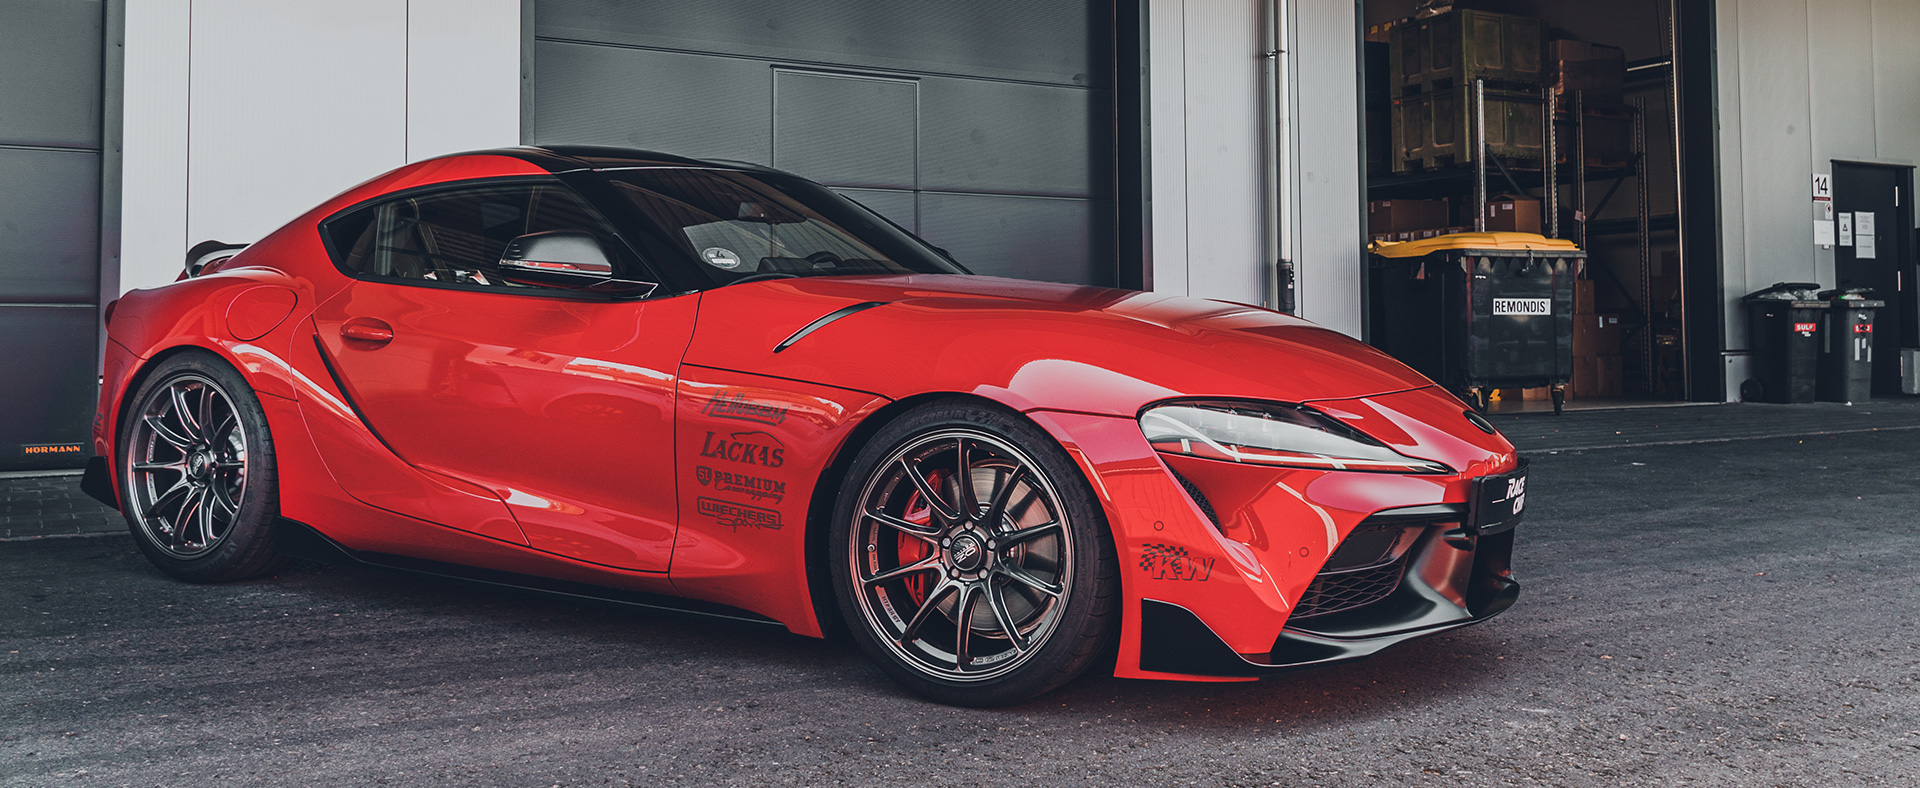 Mercedes AMG GT4 Coupé 63 S mit 760 PS – Tuning, Dyno und 100-200 km/h